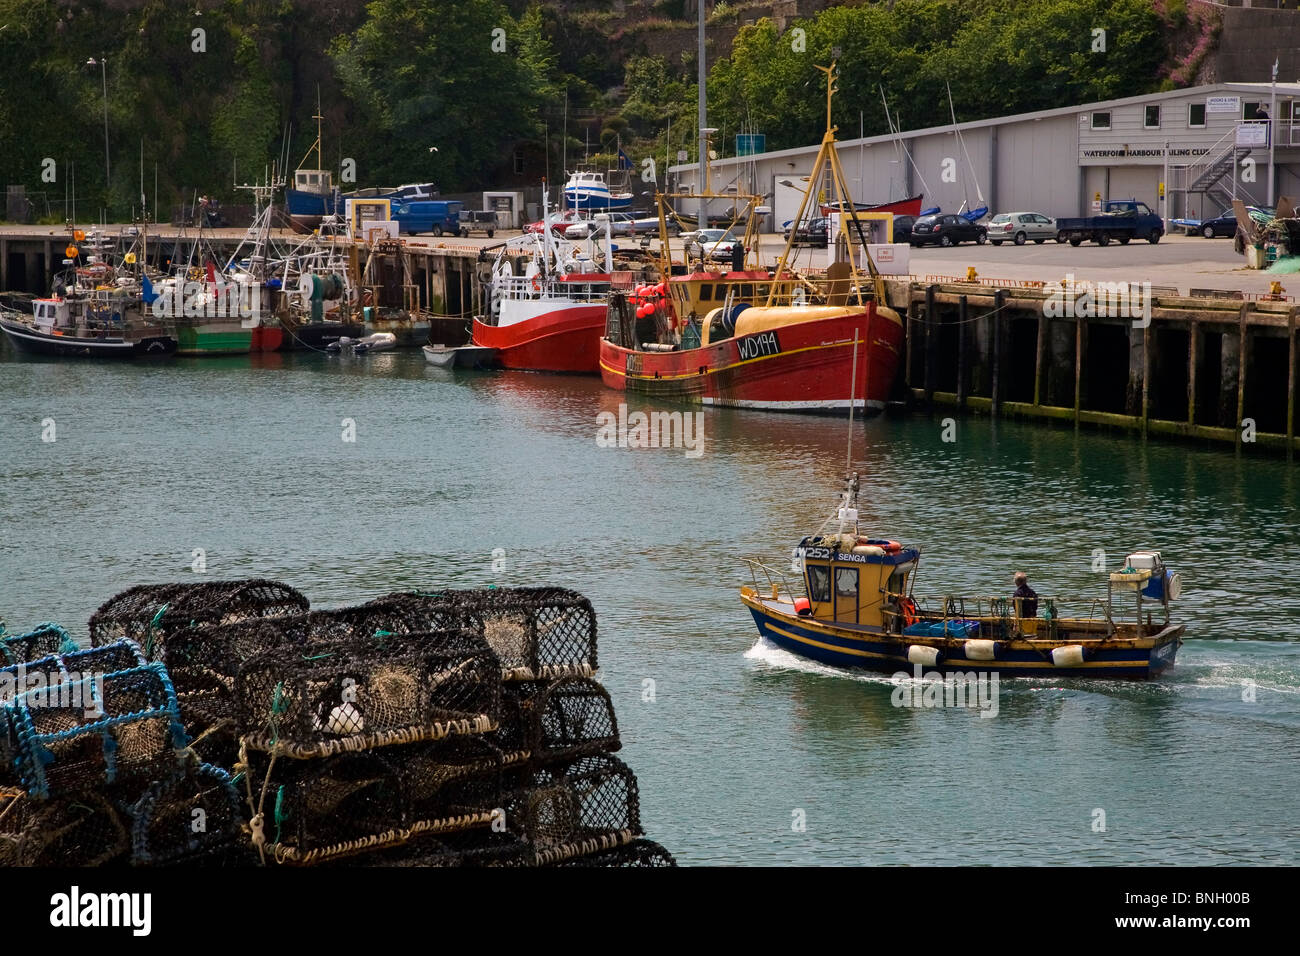 Fishing Boat and Harbour, Dunmore East, County Waterford, Ireland - Stock Image